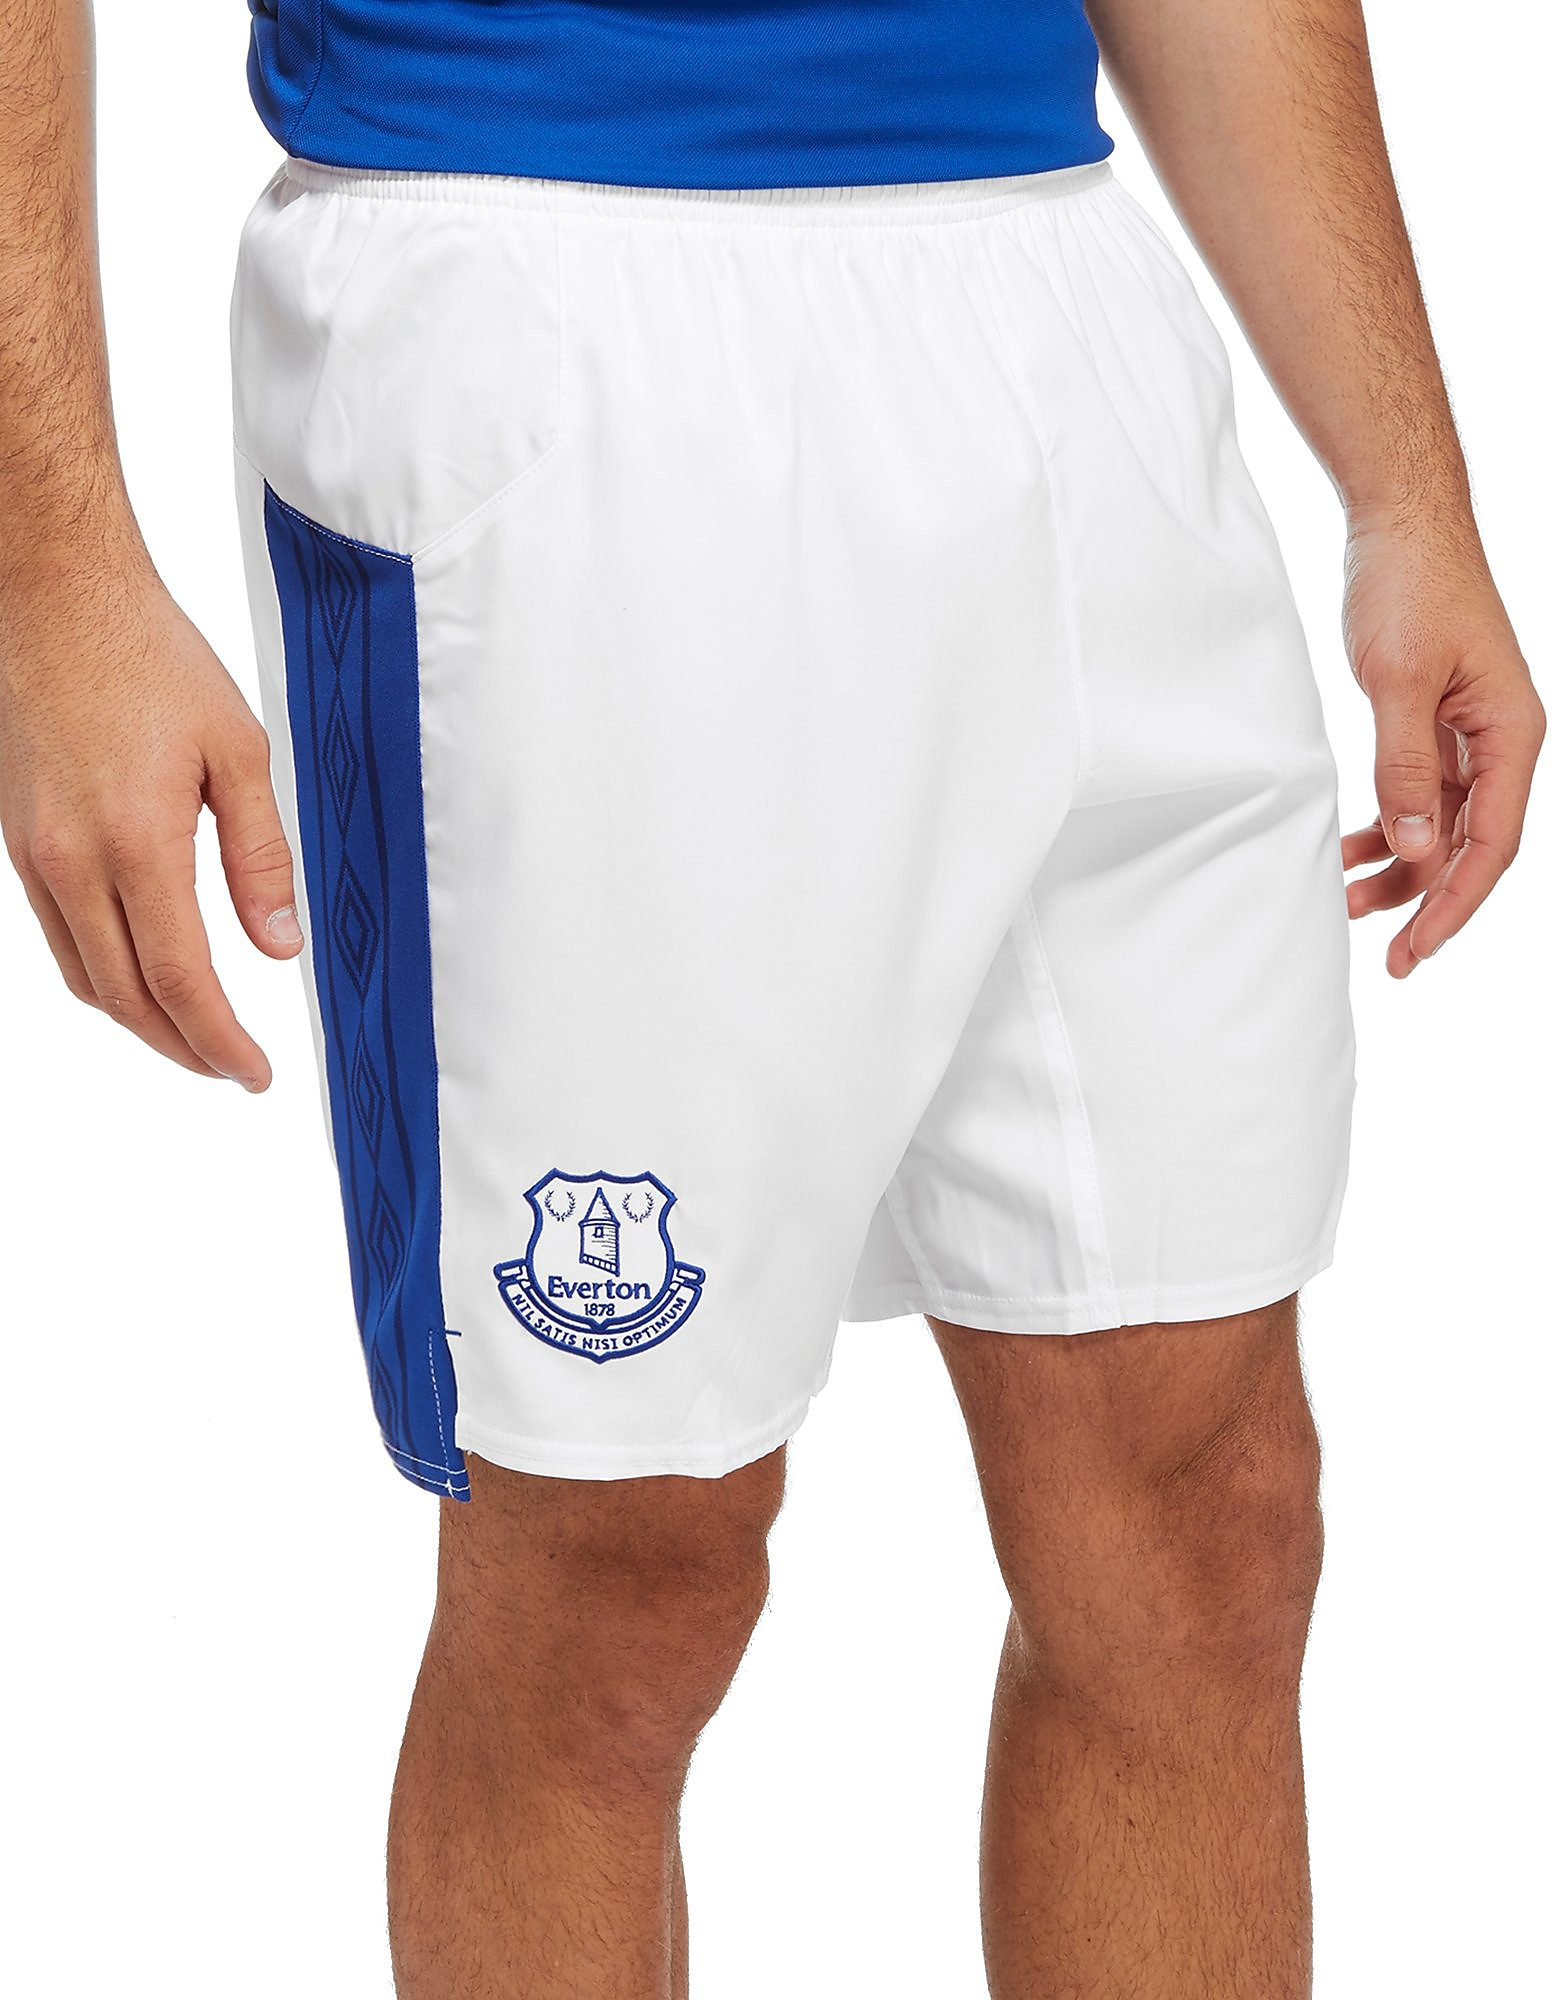 Umbro Everton FC 2017/18 Home Shorts